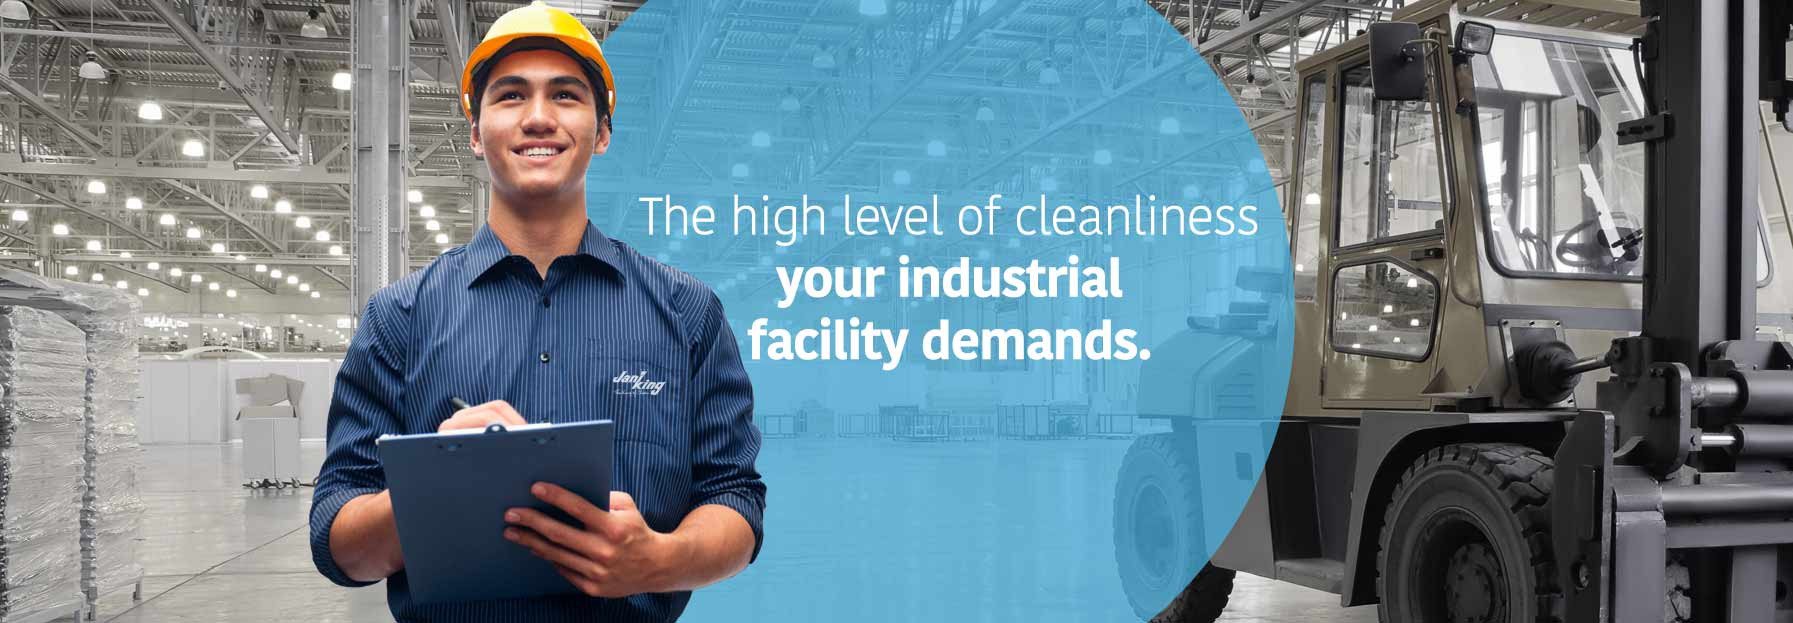 Jani-King Industrial and Manufacturing Cleaning Services